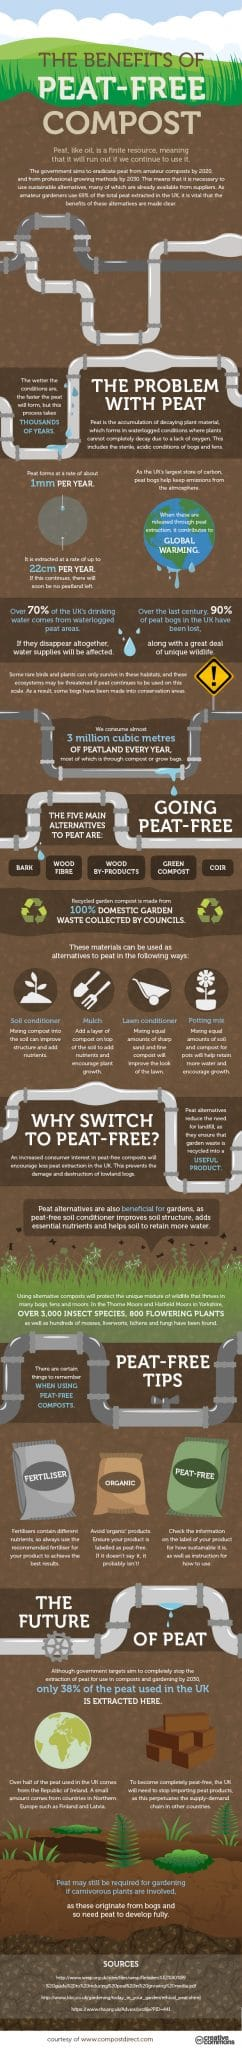 The benefits of peat-free compost